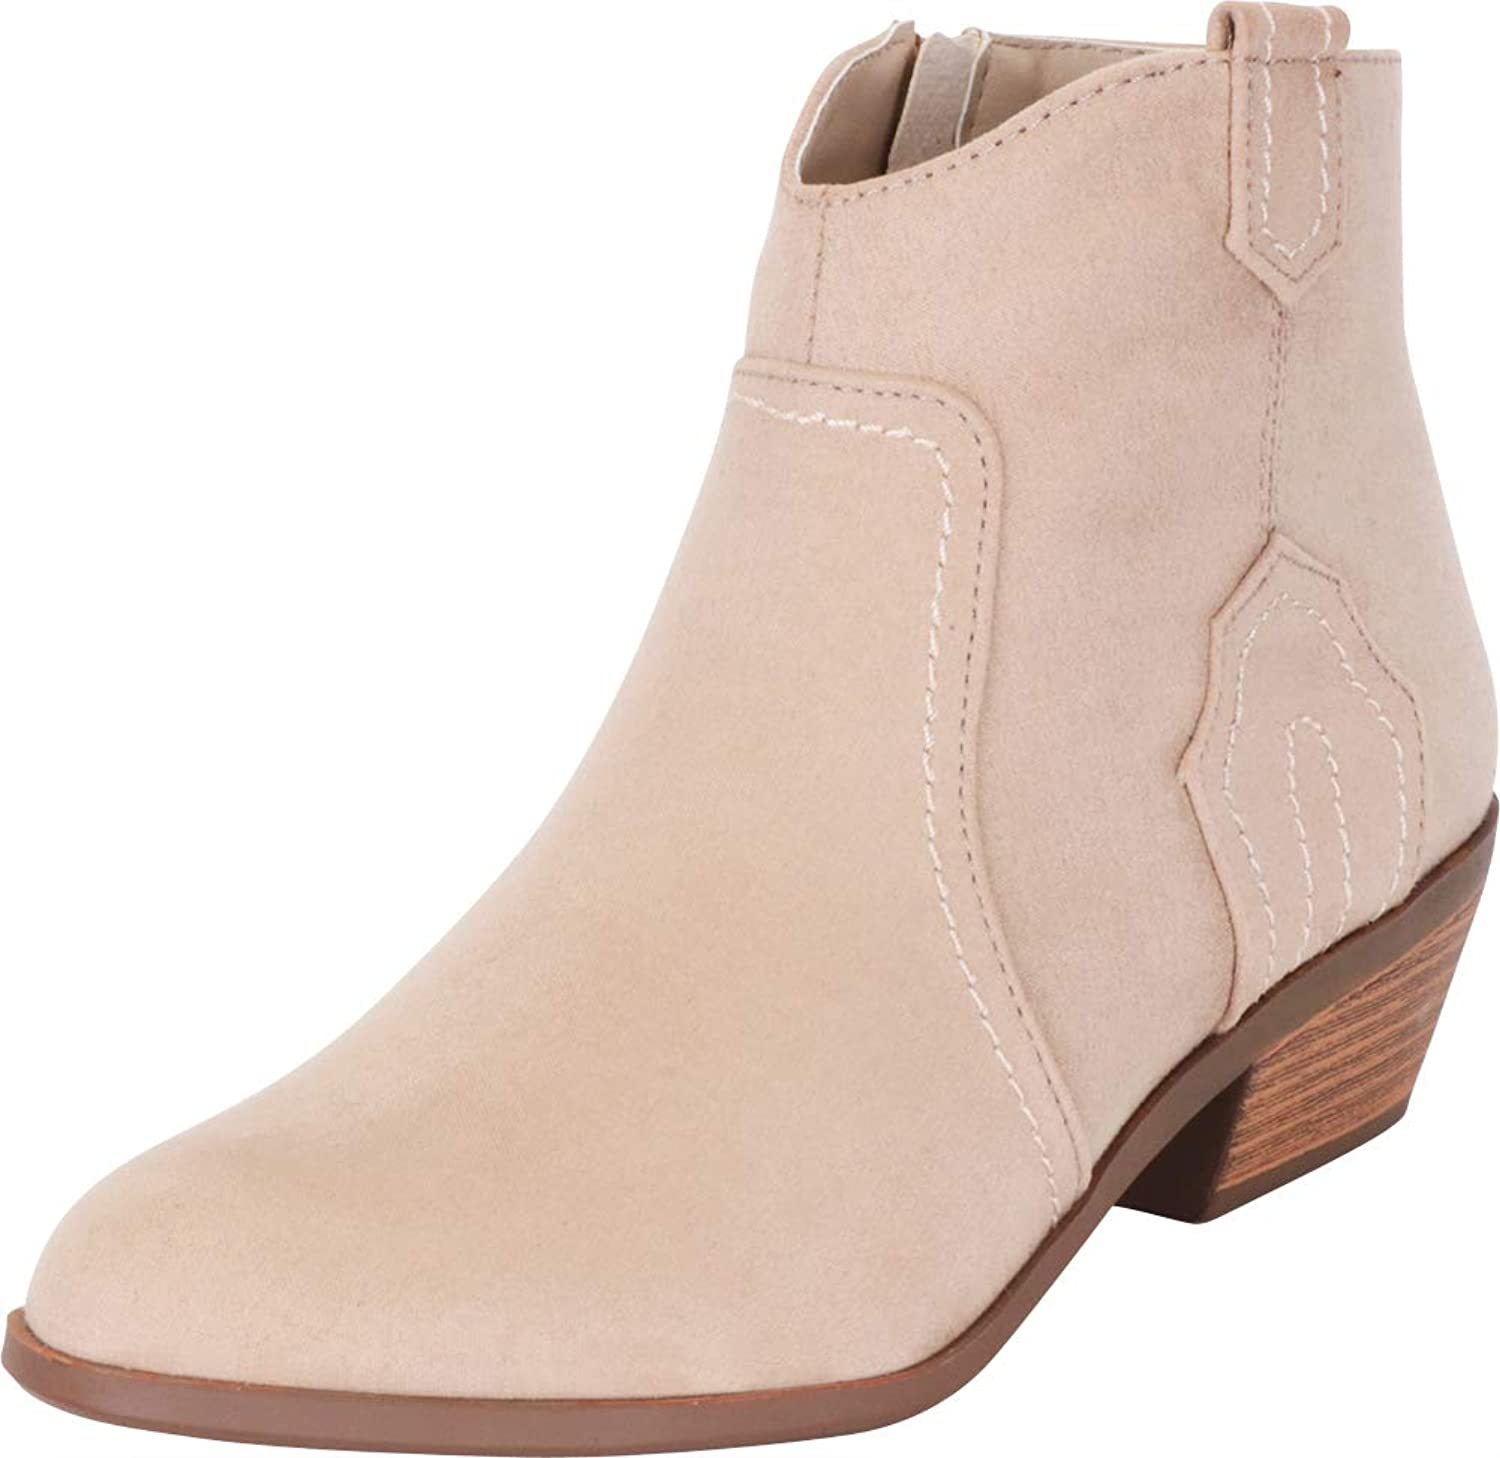 Cambridge Select Women's Western Stitched Low Stacked Heel Ankle Cowboy Boot